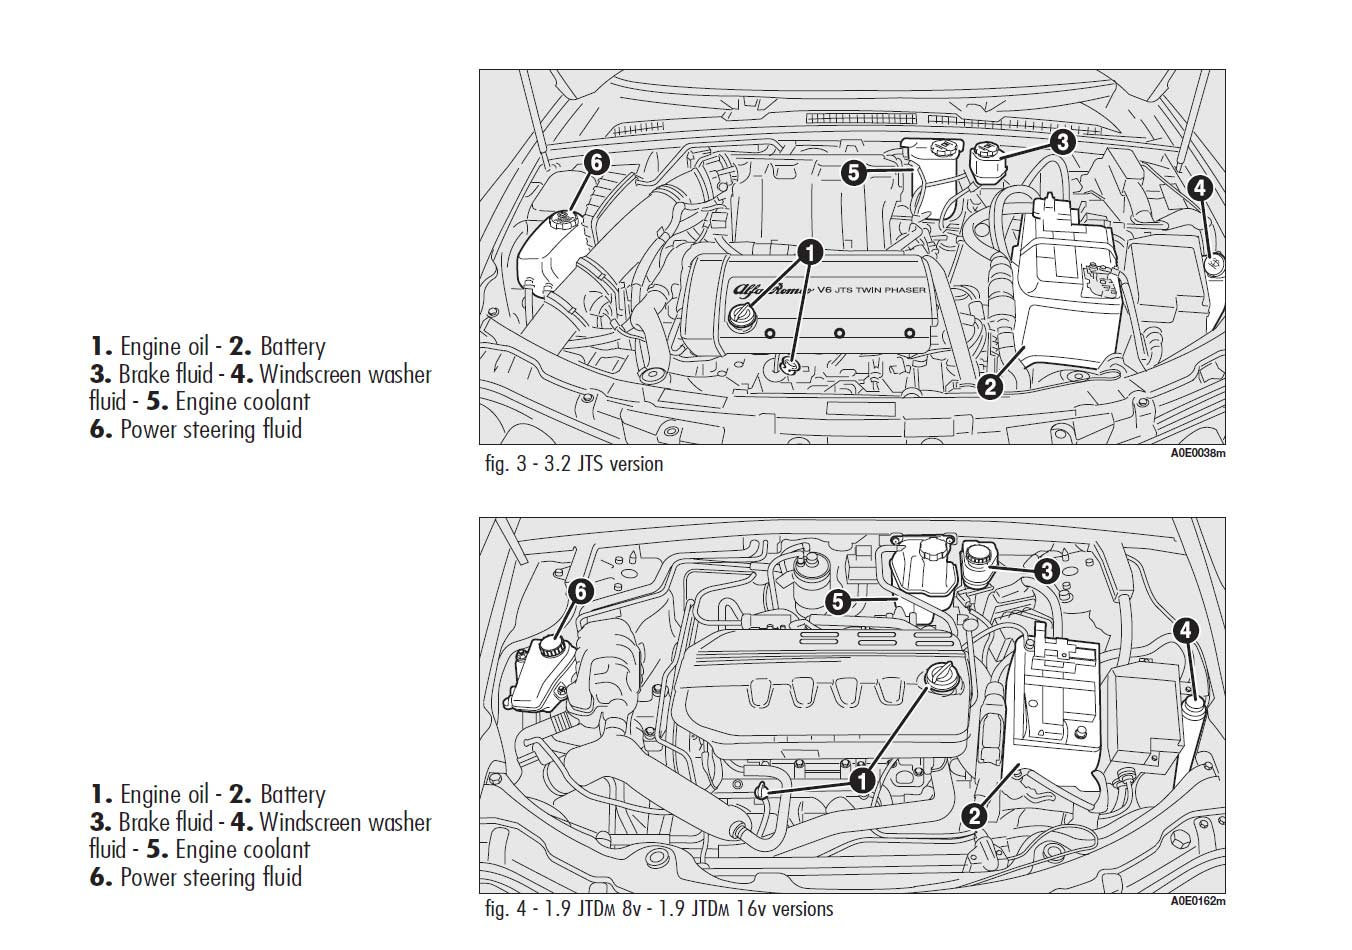 fiat stilo wiring diagram 1994 ford f150 parts pdf library